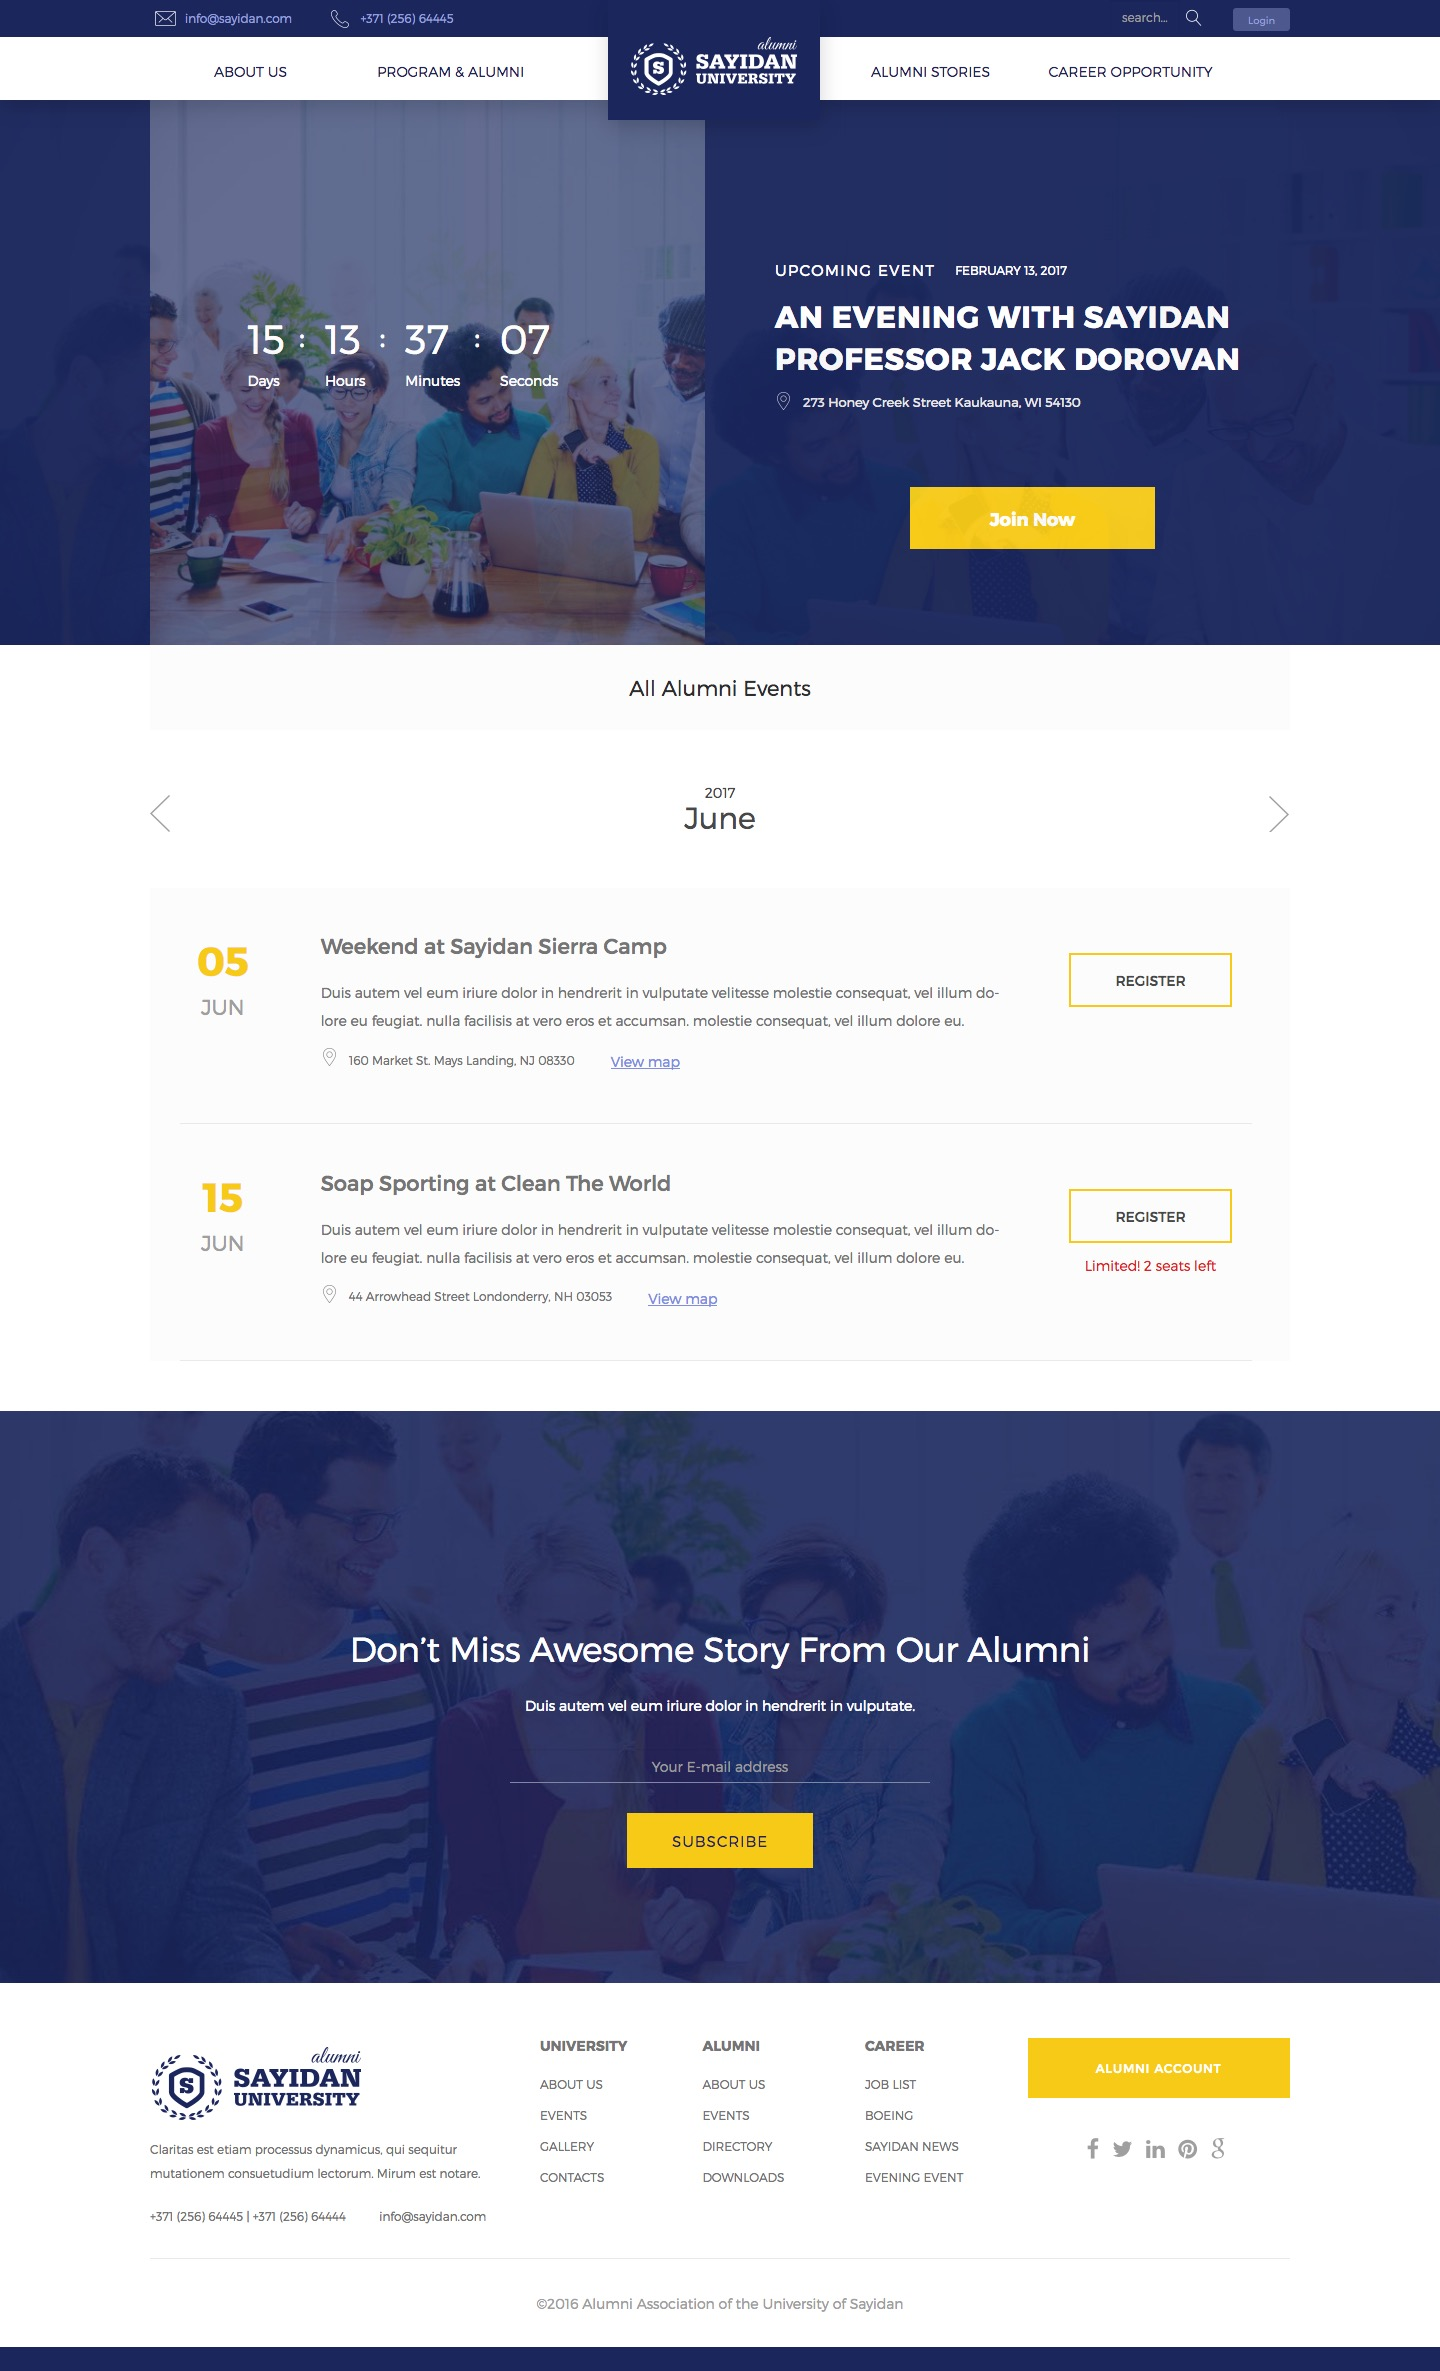 Programs & Events - University Alumni Education WordPress Theme